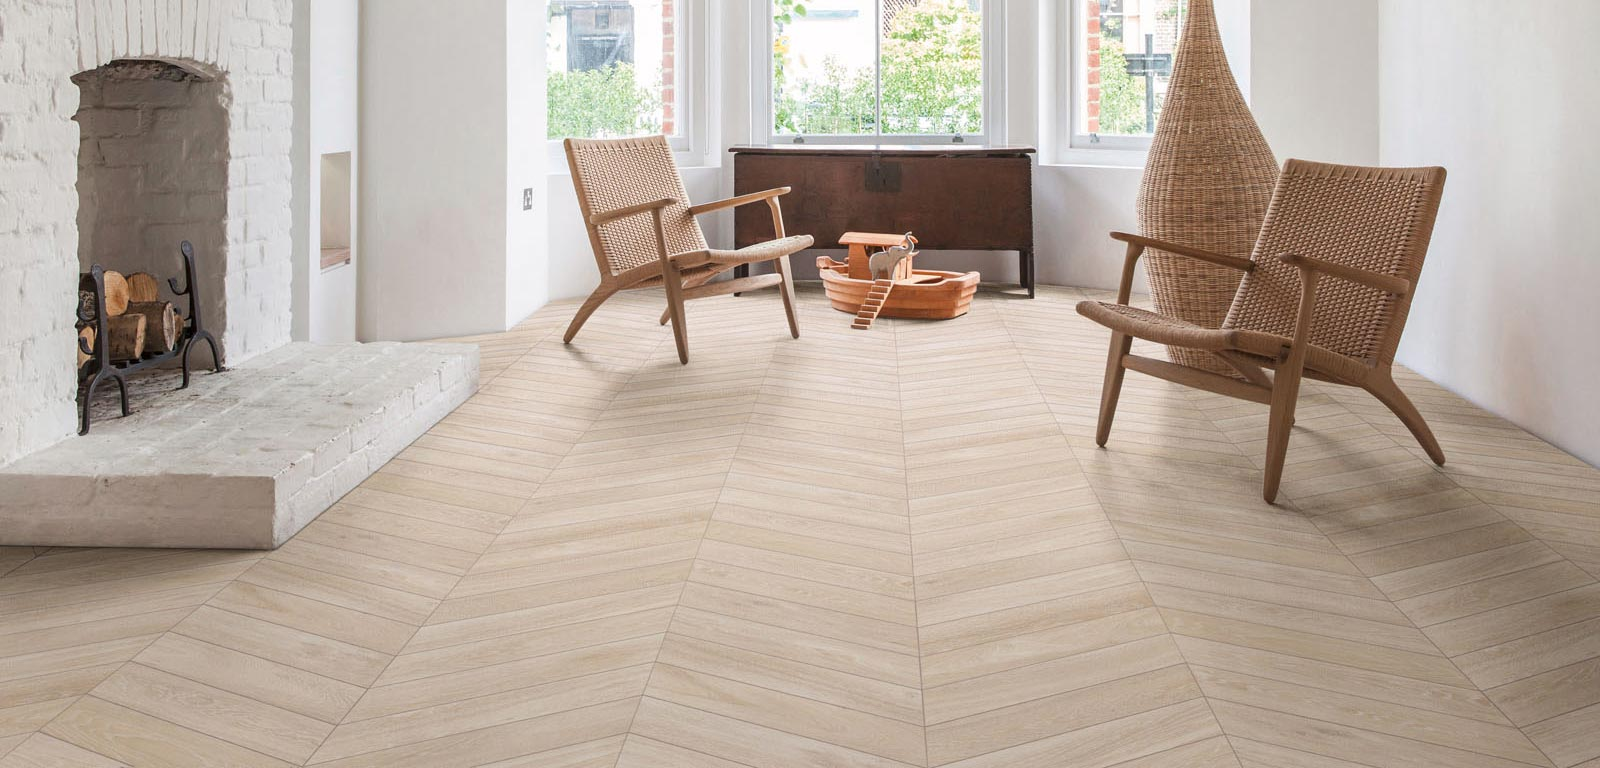 Woodchoice The Wood Effect Stoneware That Recalls Parquet Of Bygone Days